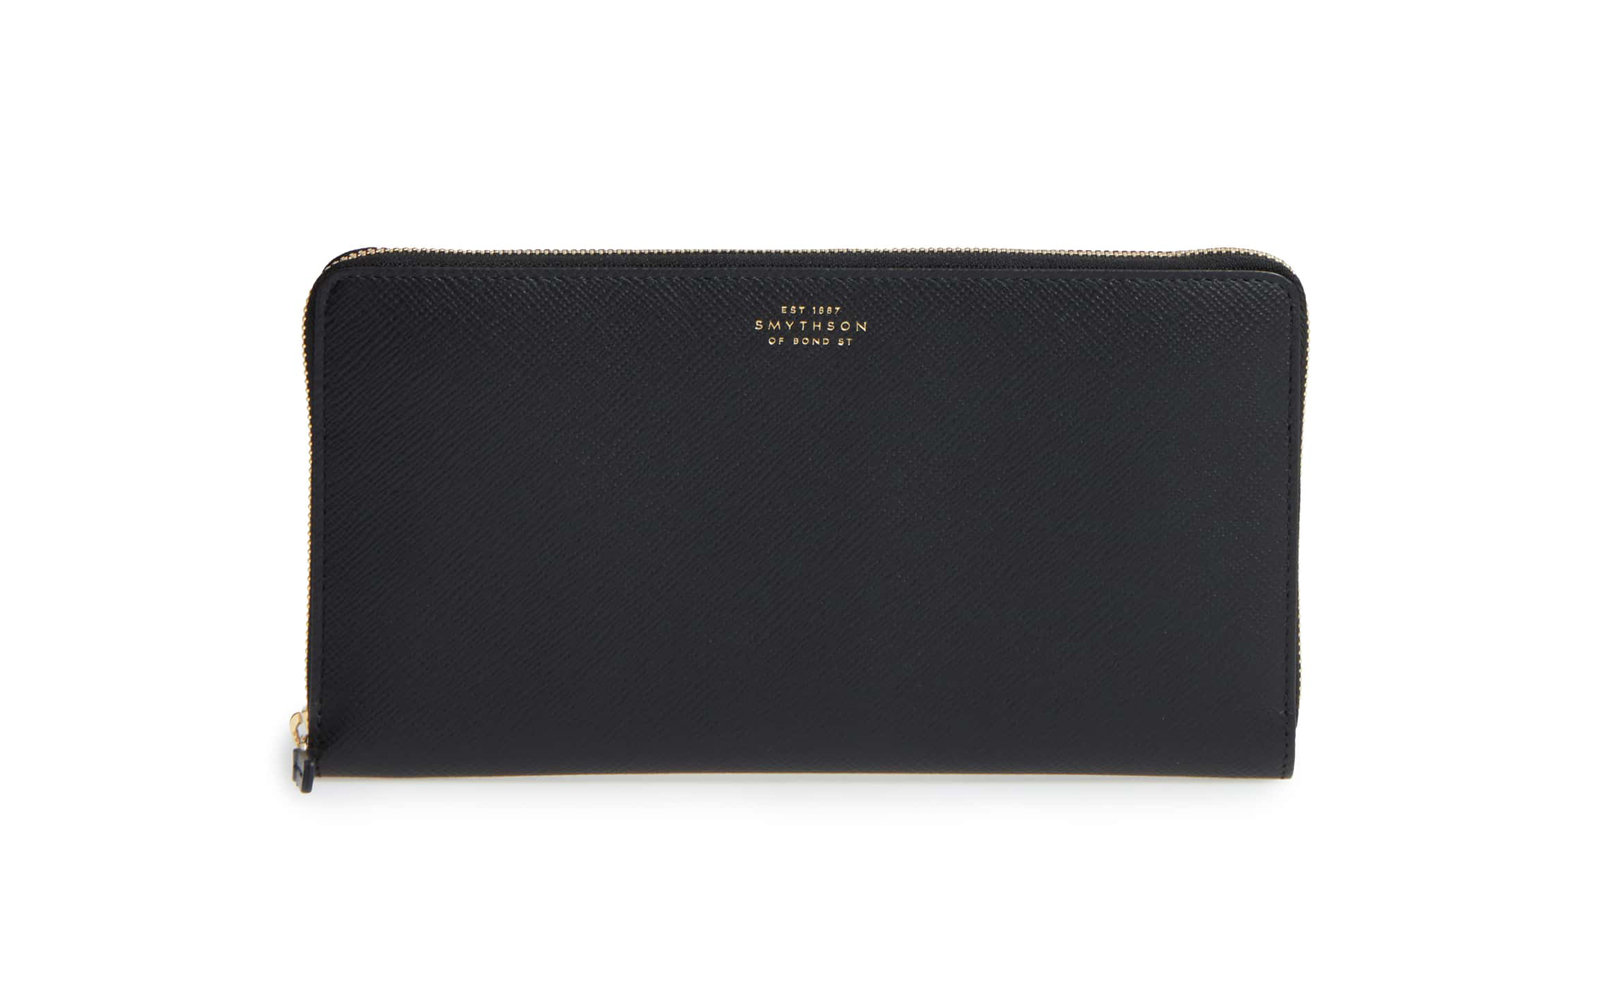 Nordstrom, Panama Calfskin Leather Travel Wallet and Passport Case, Best Gifts for Business Travelers